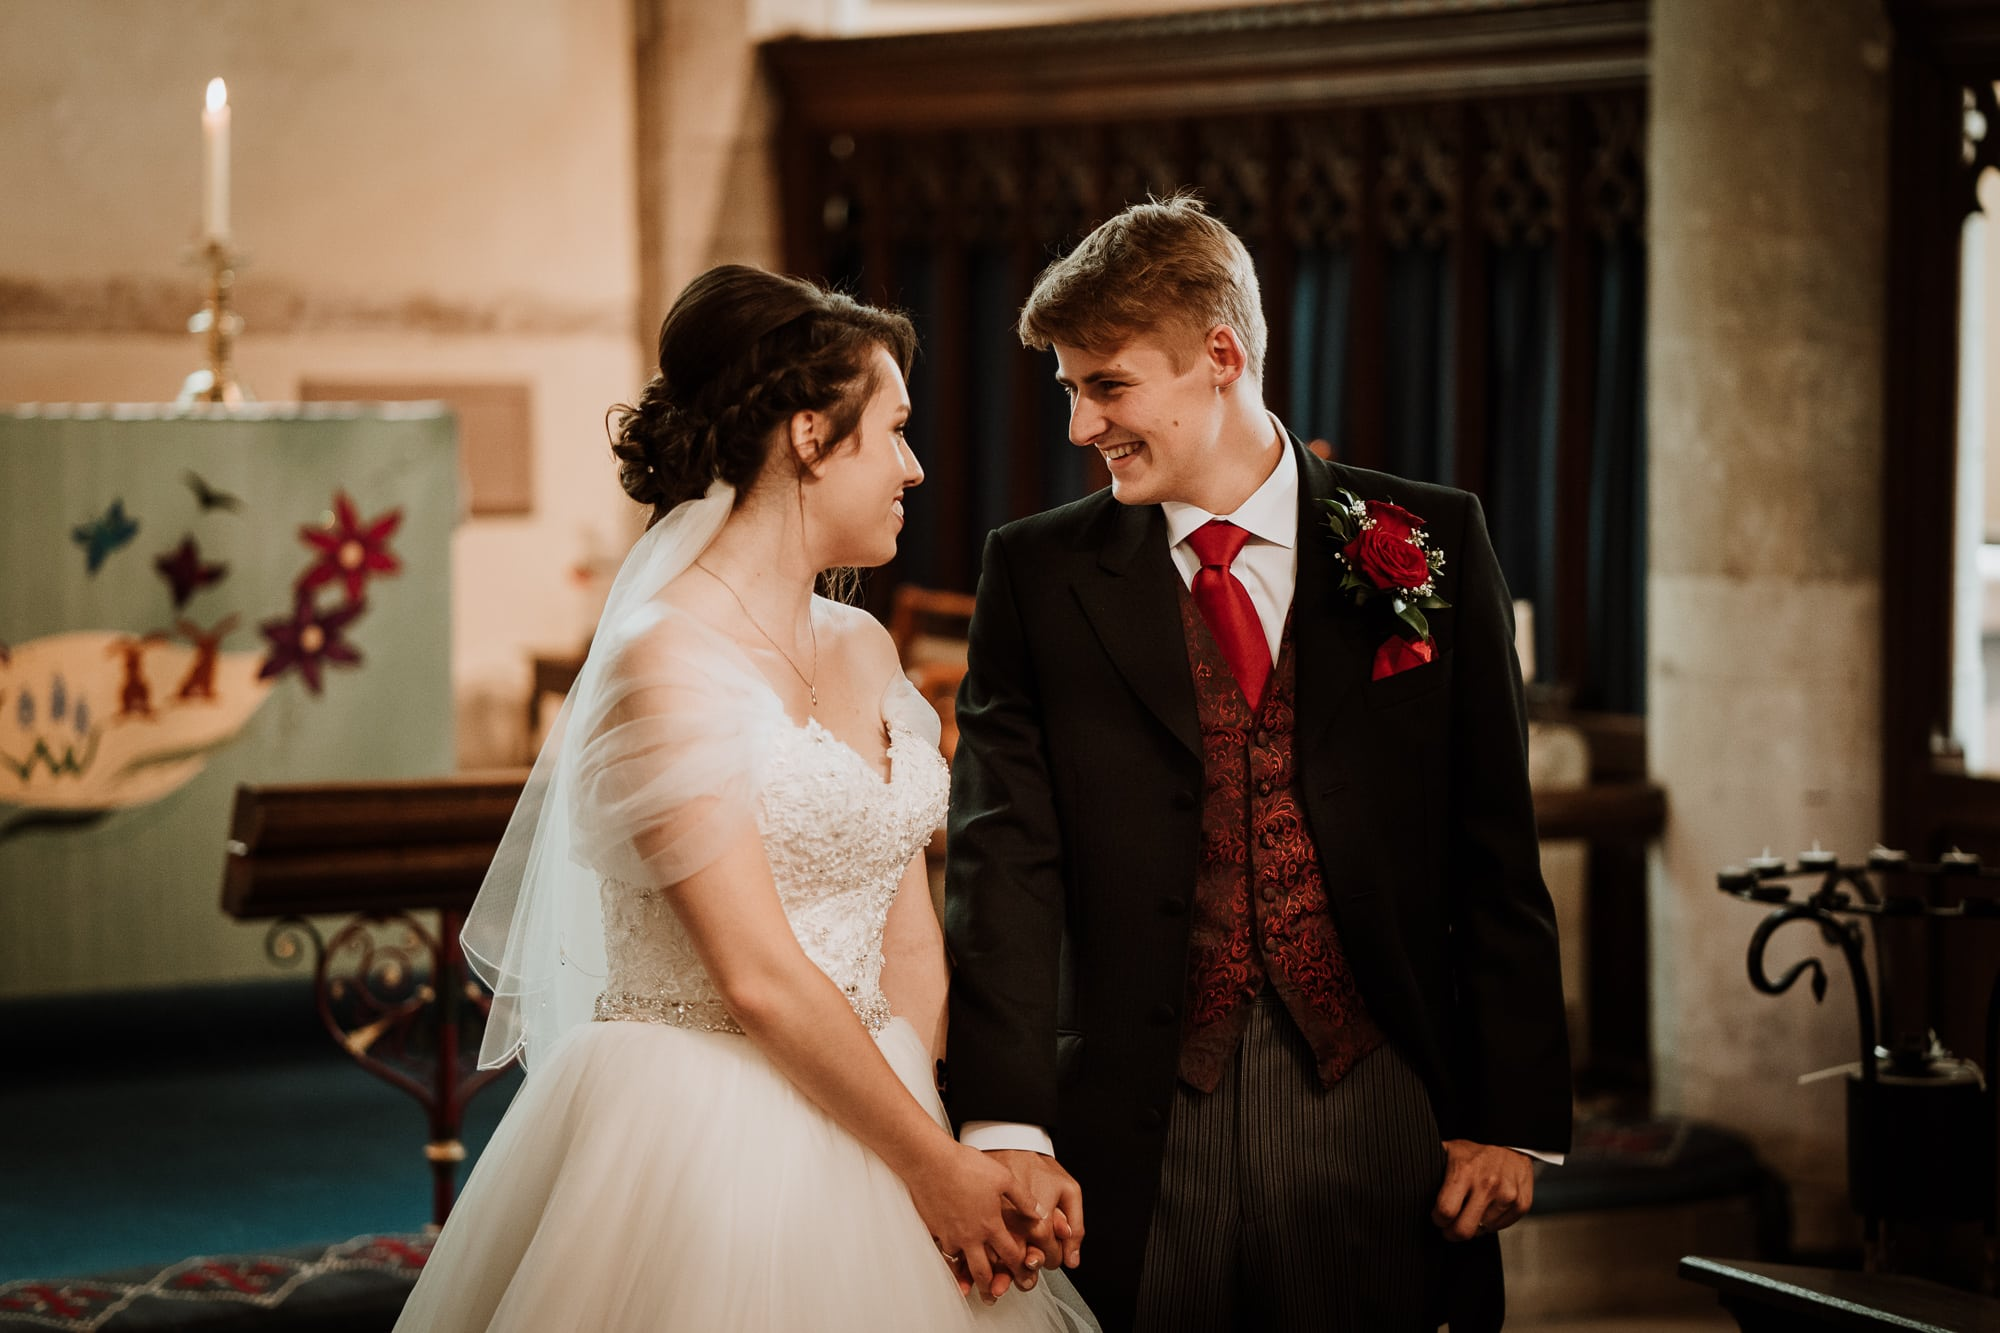 Bride and Groom holding hands and smiling at each other